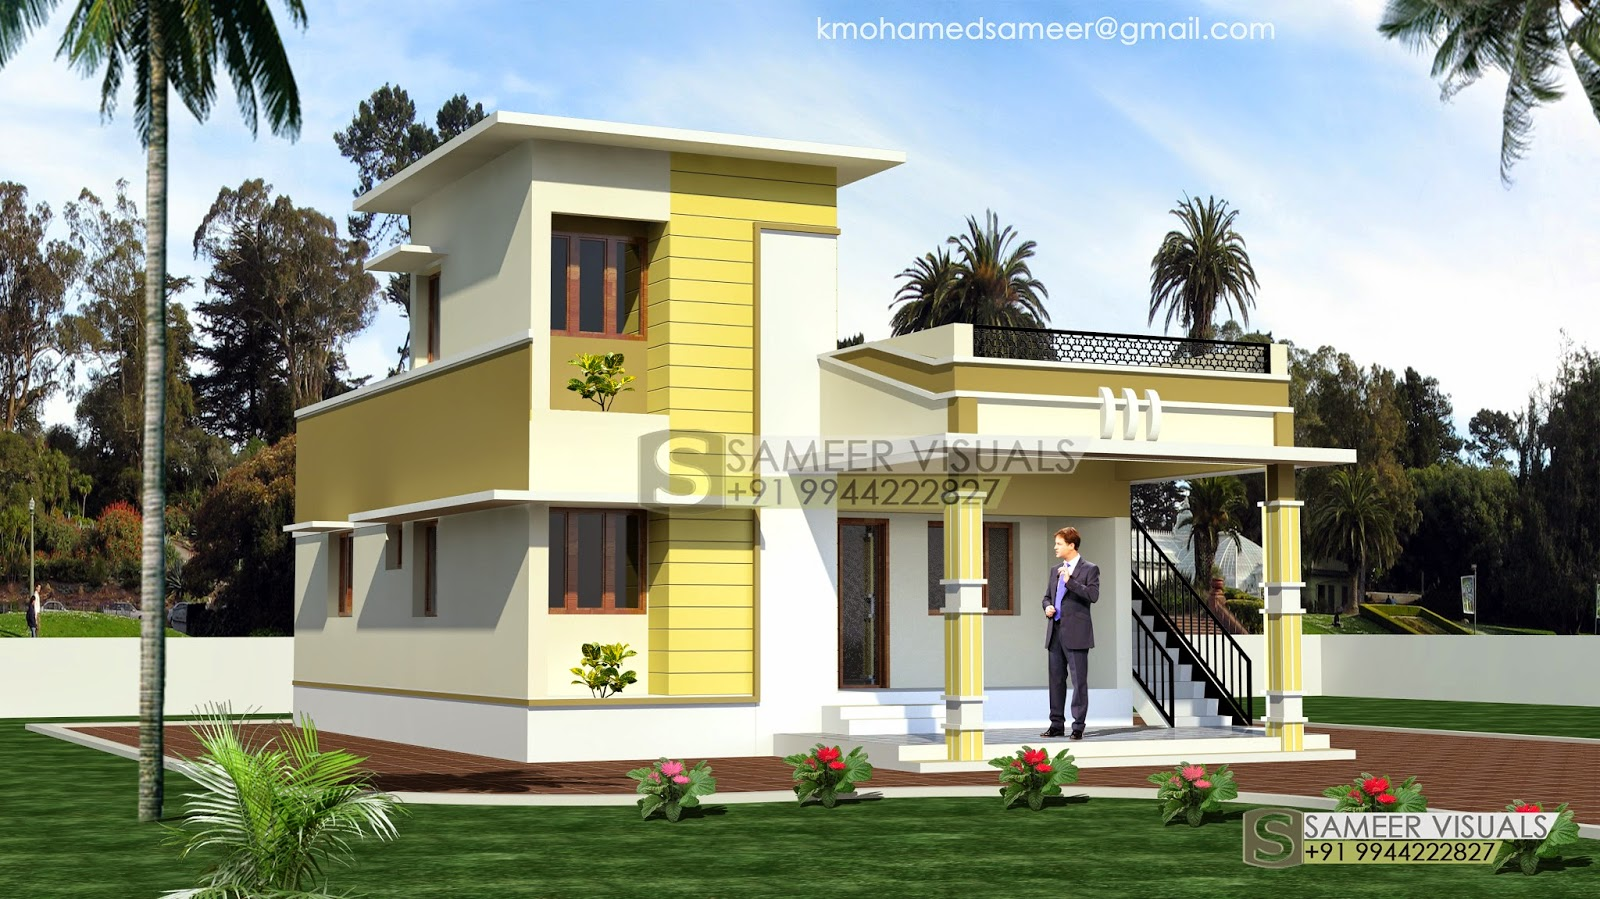 Ground Floor House Elevation Furnished : Sameer visuals ground floor elevation